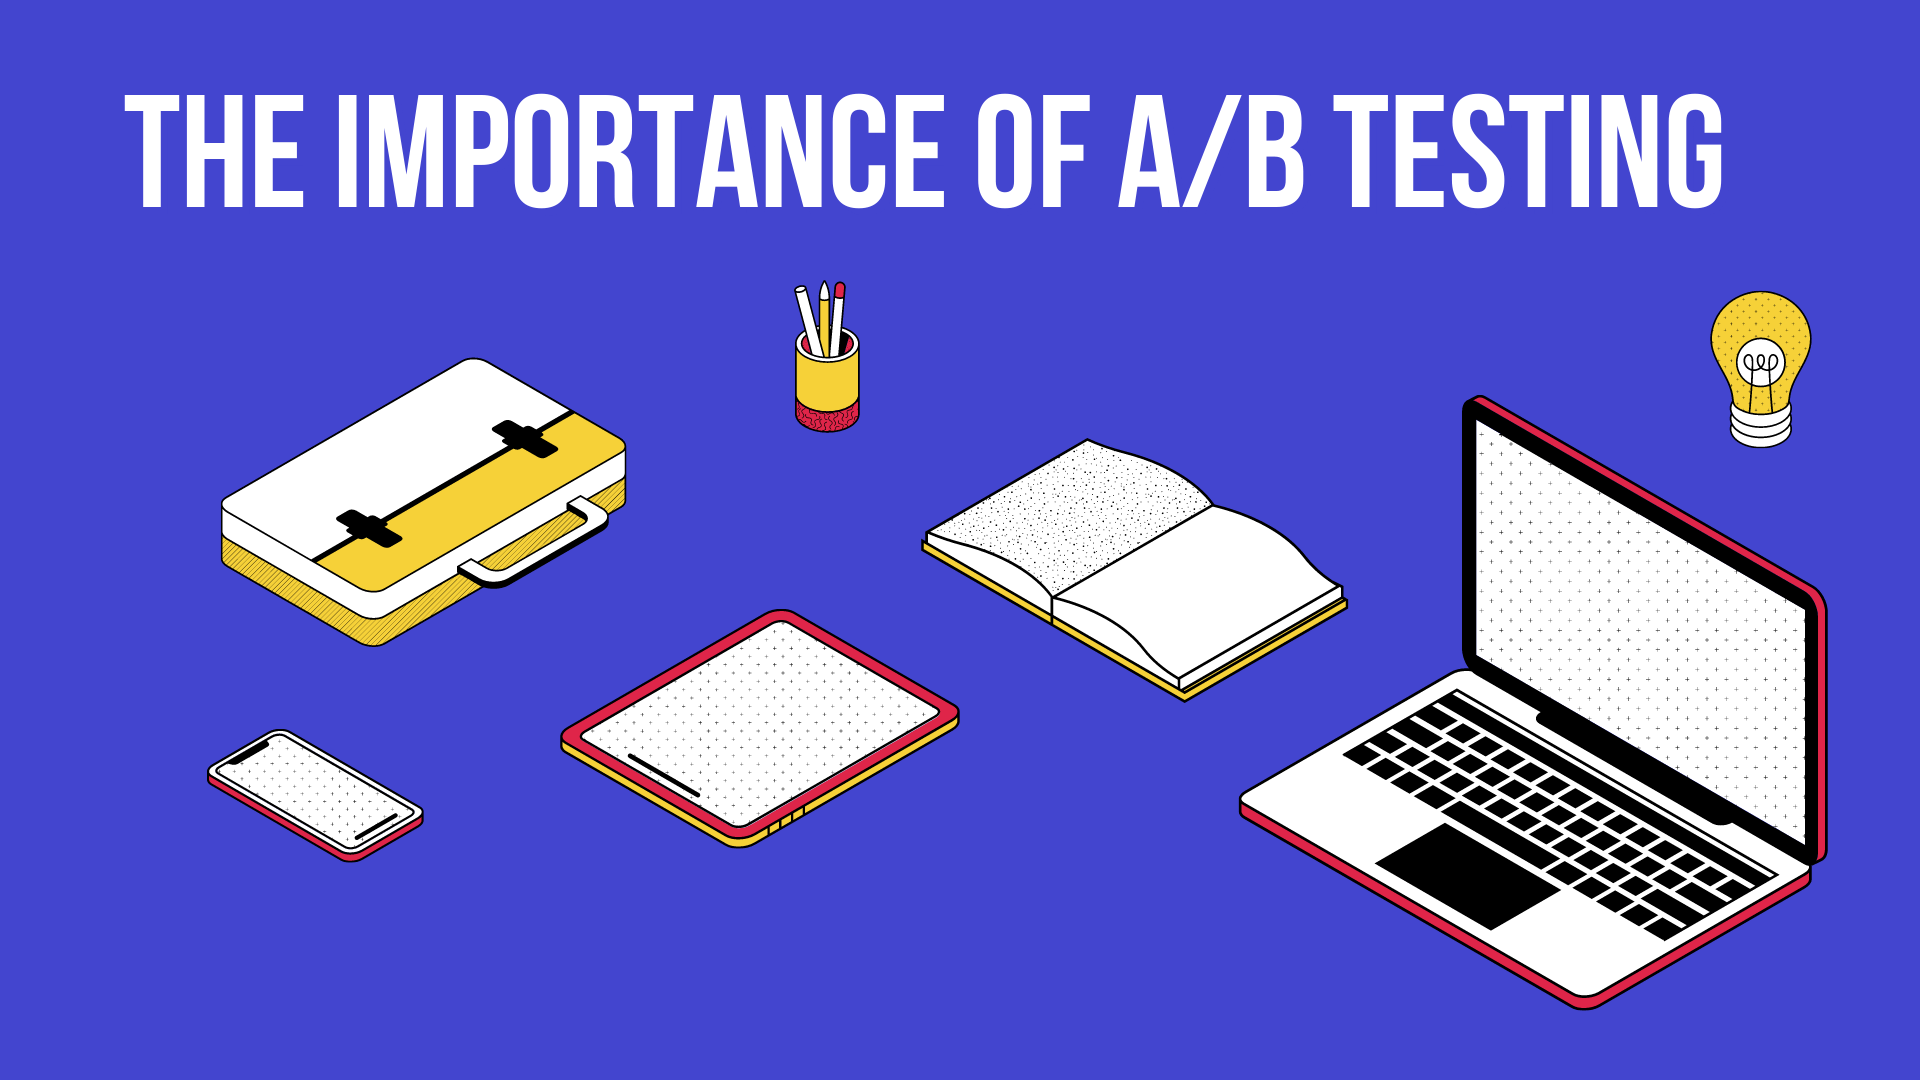 importance of A/B testing